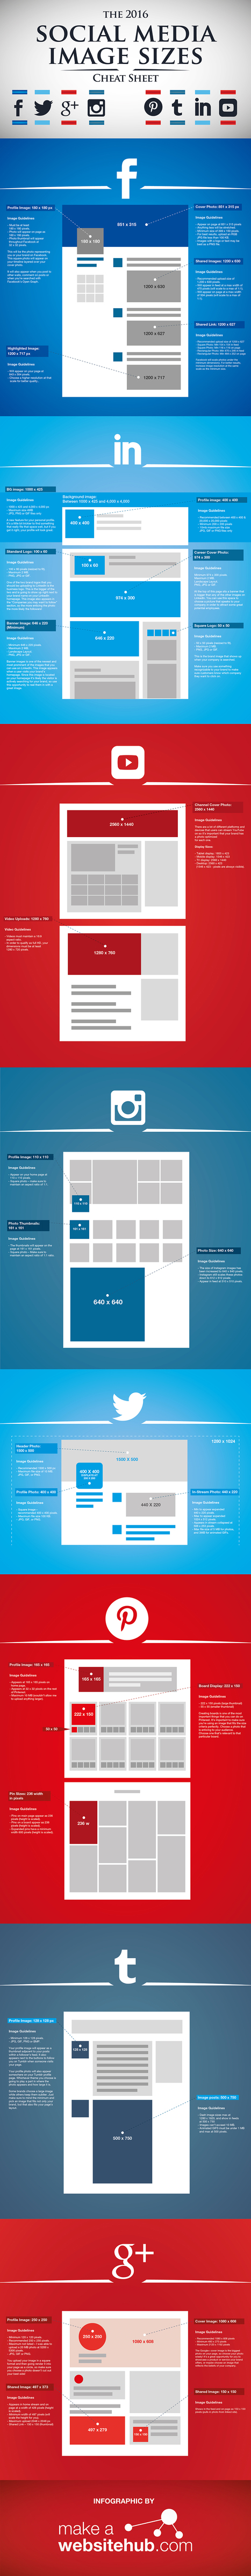 2016 Social Media Image Sizes Cheat Sheet | Digital and Graphic Design Tips, Tools and Tricks in Higher Education | Scoop.it